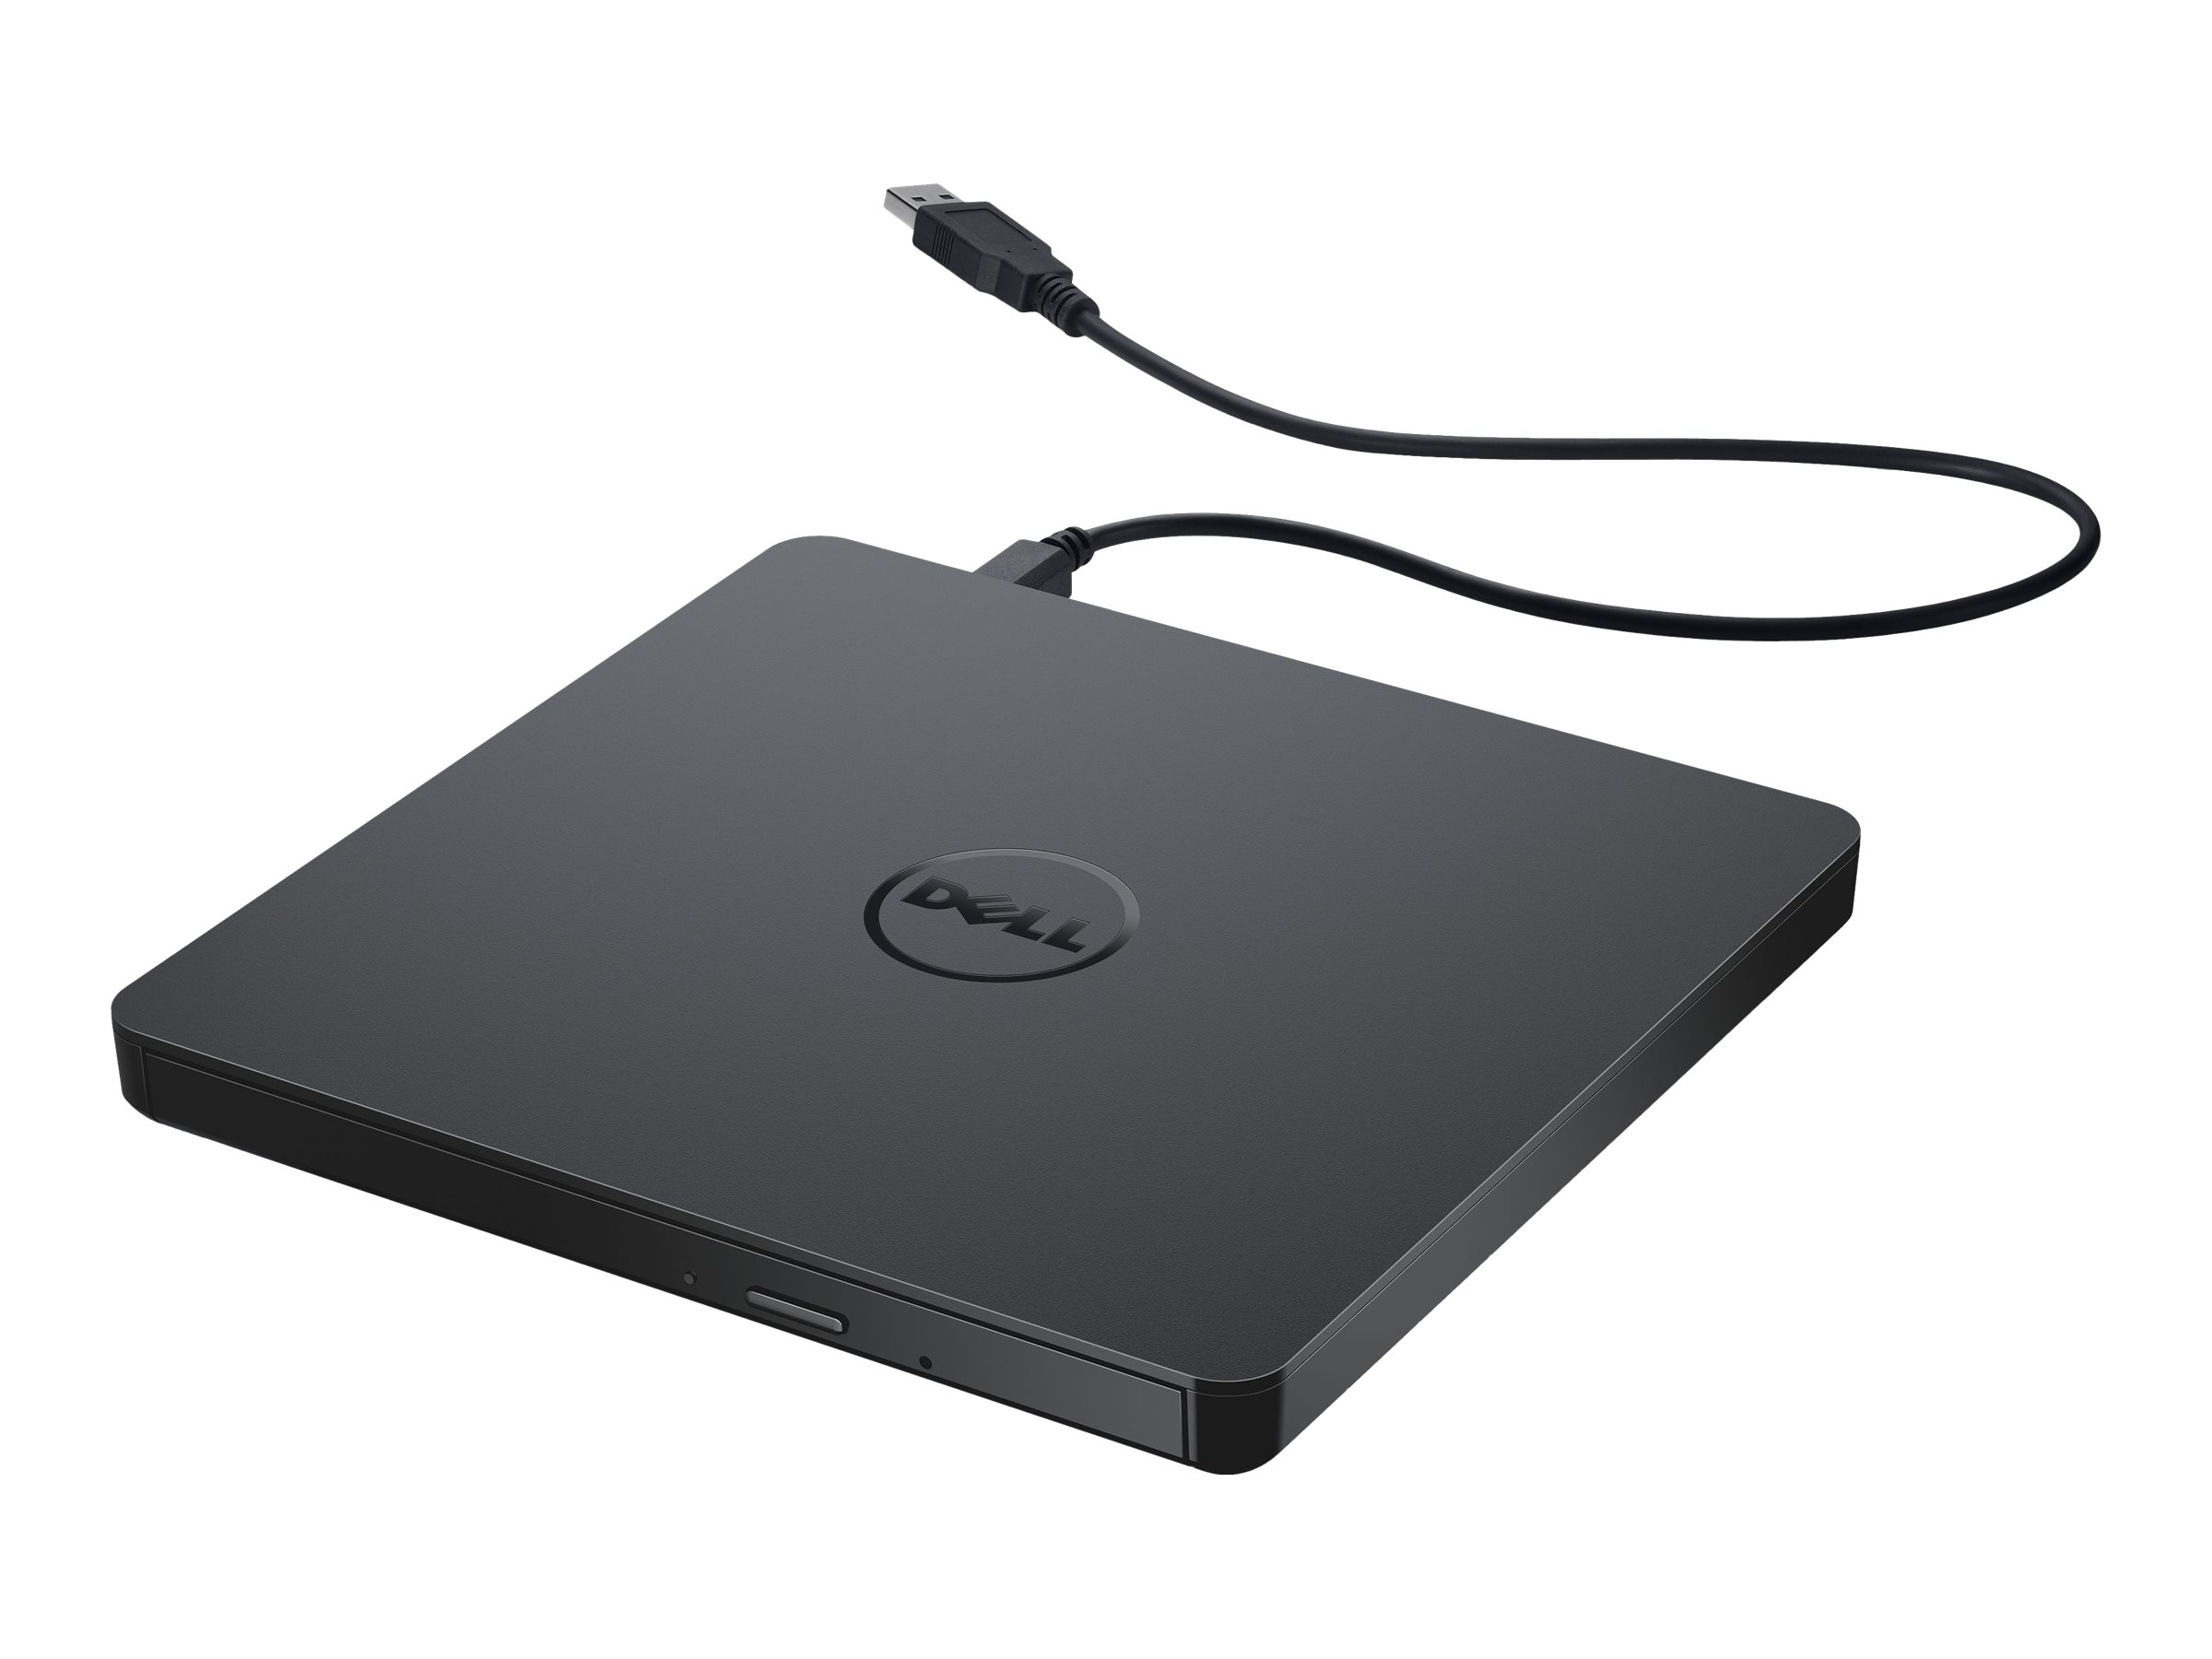 Dell DVD±RW drive - USB 2.0 - external - 429-AAUX